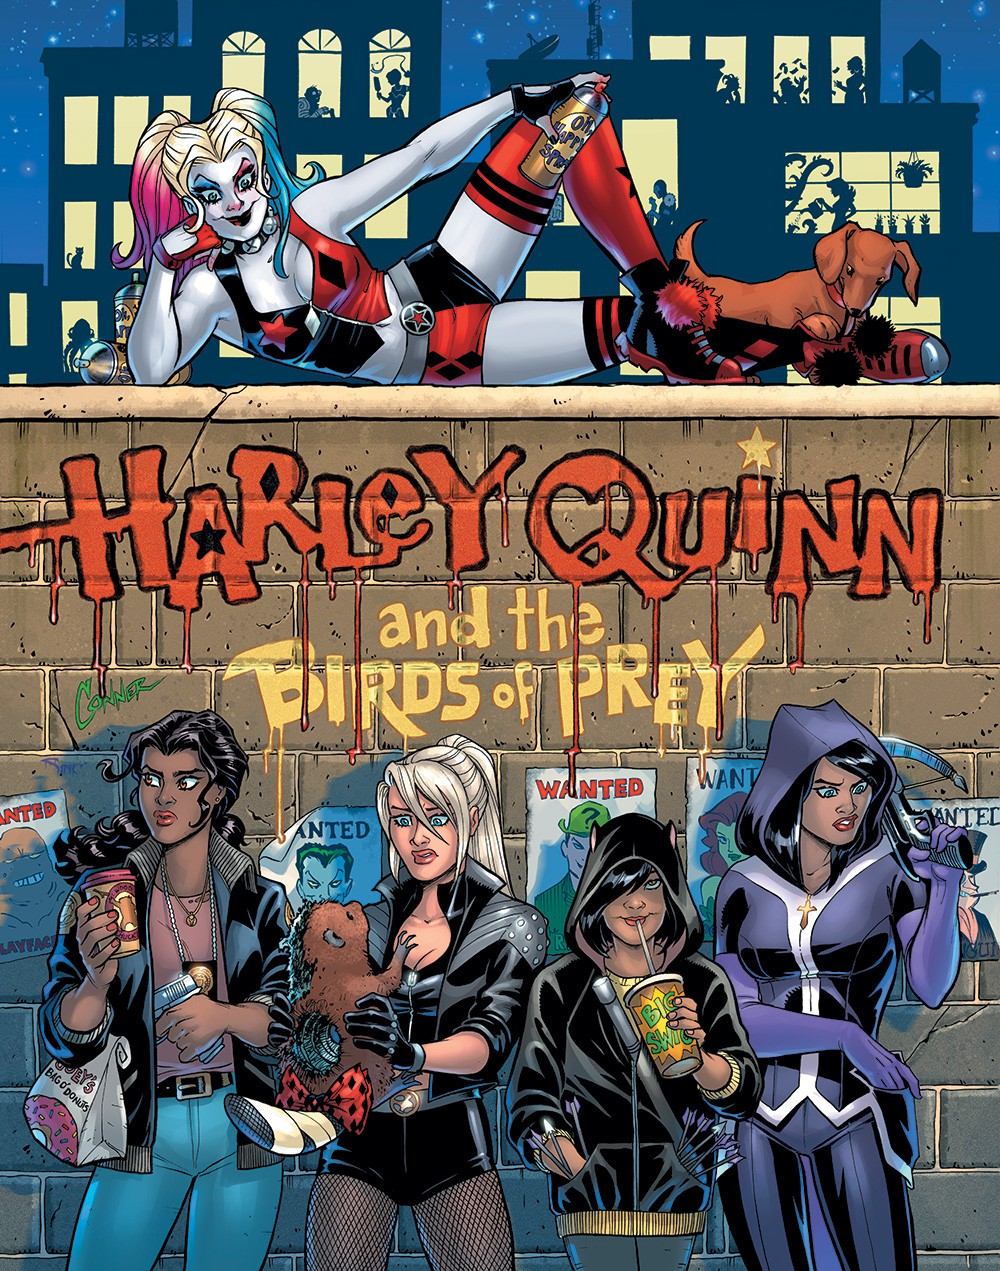 NYCC 2019: Amanda Conner and Jimmy Palmiotti Reunite with Harley Quinn in February 2020